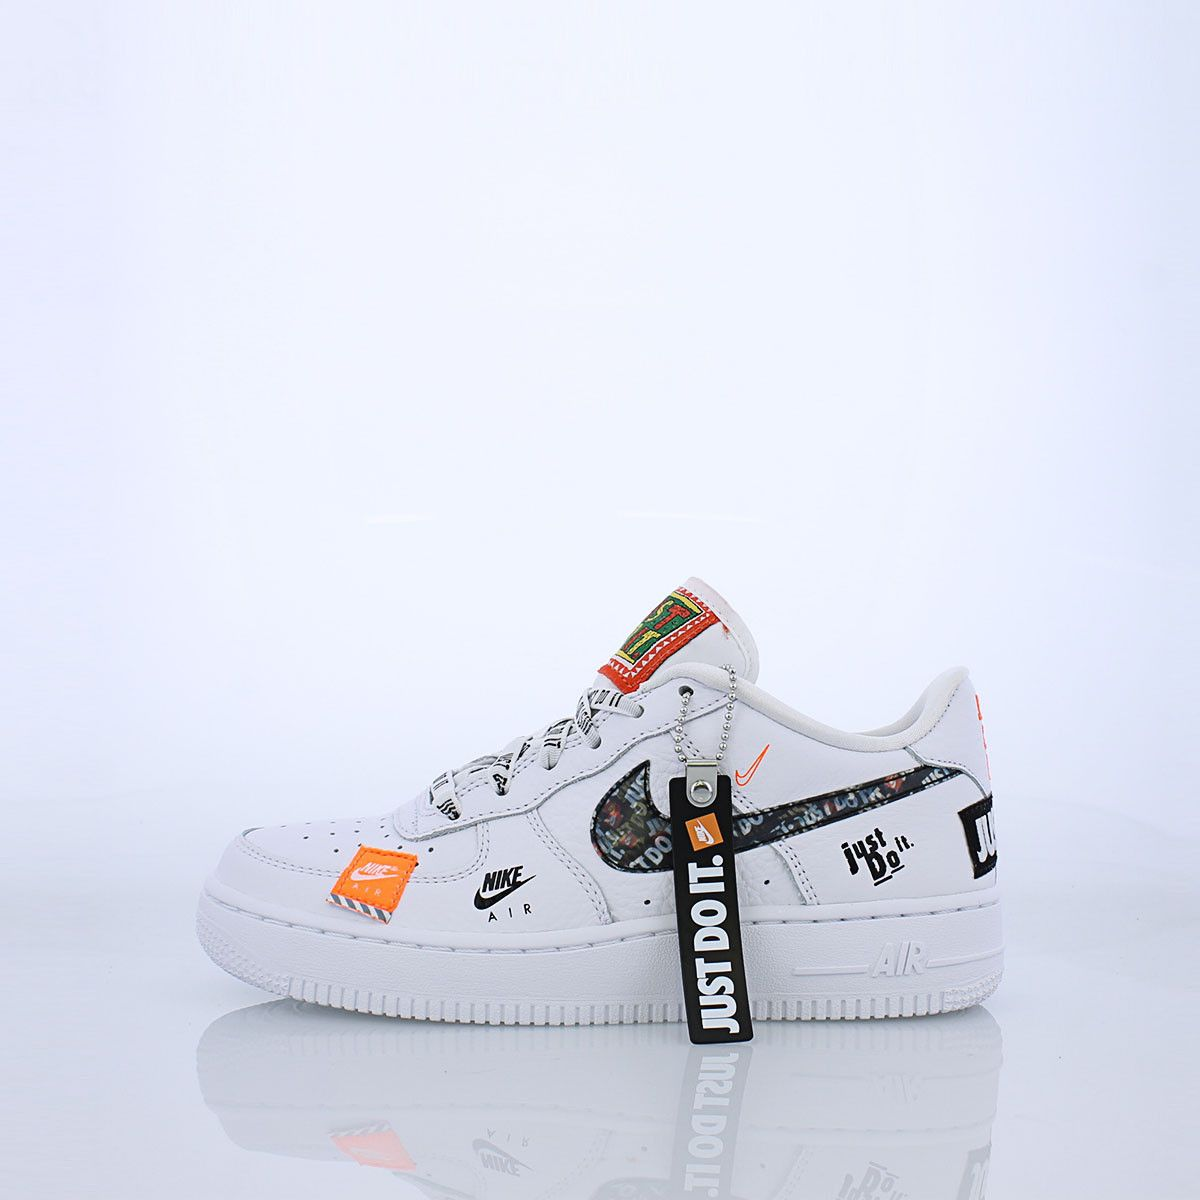 555cc5d5bfc84d All-over prints of the Nike Air Force 1 join together for the 30th  anniversary of JDI catchphrase with a Kid s version. Complete with JDI  laces and a ...